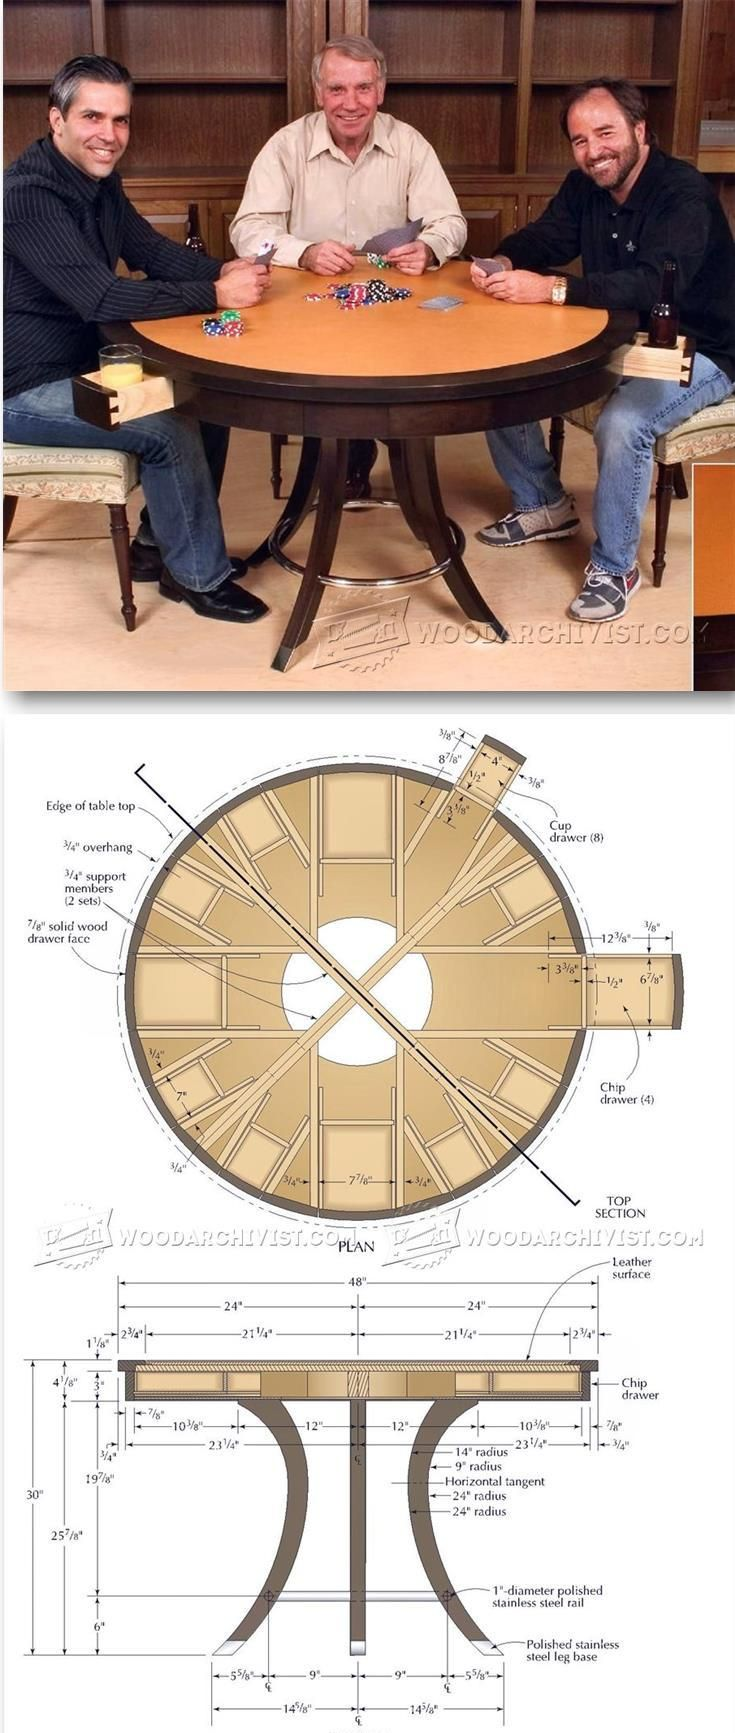 Poker Table Plans - Furniture Plans and Projects | WoodArchivist.com